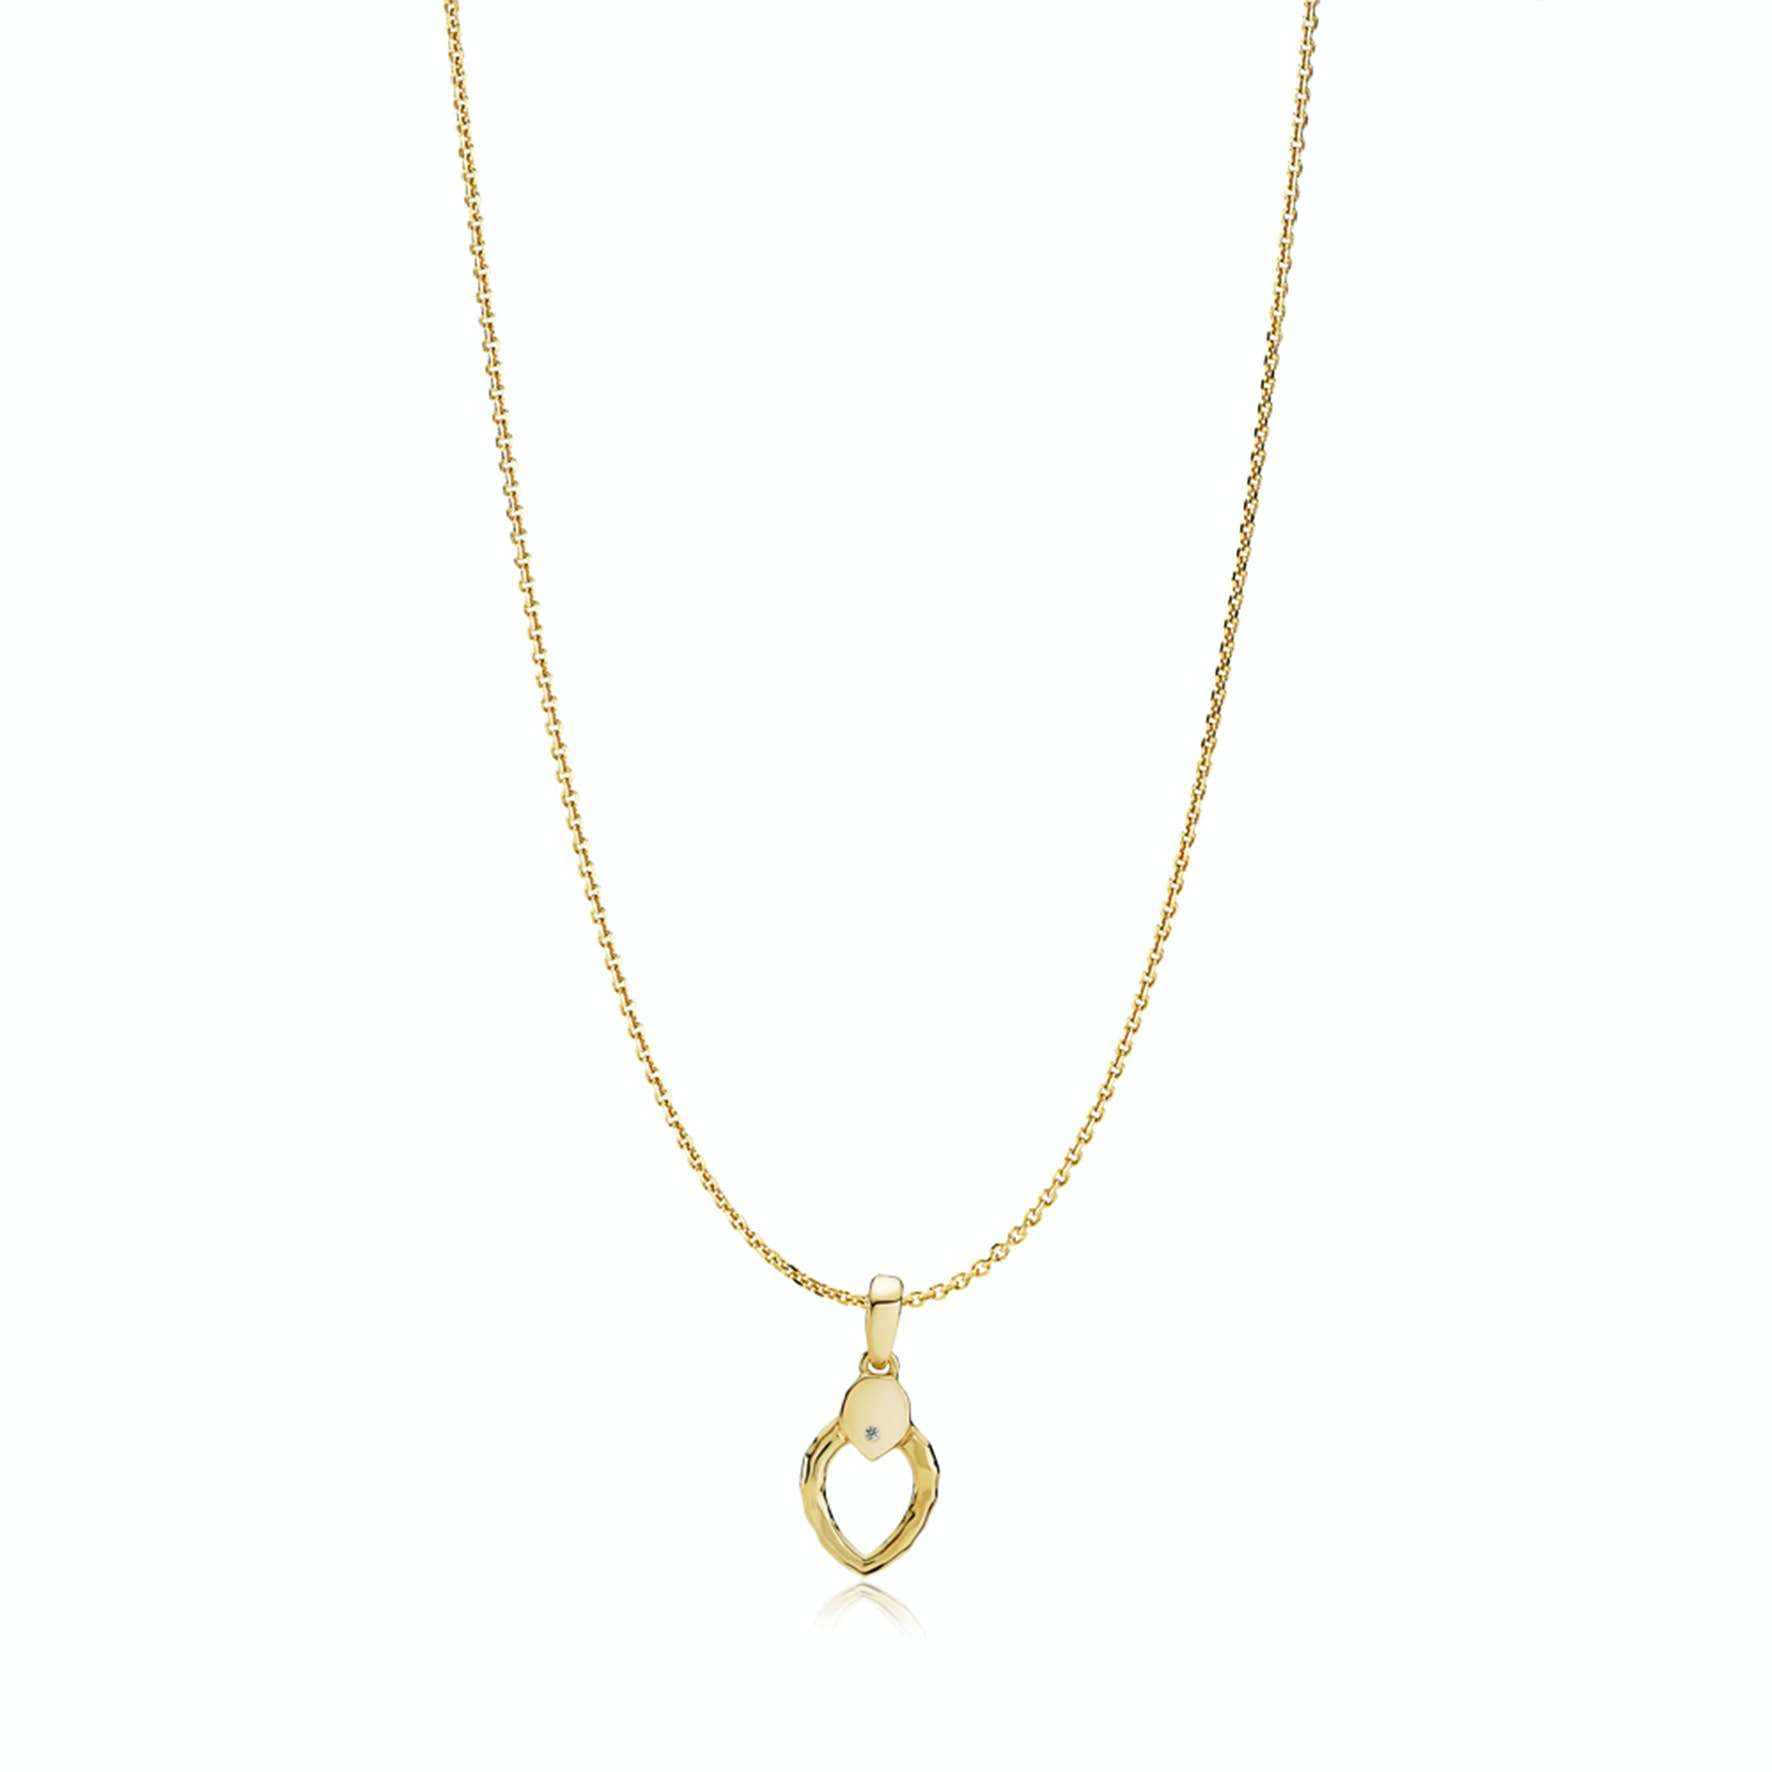 Cecilie Schmeichel Necklace from Izabel Camille in Goldplated-Silver Sterling 925